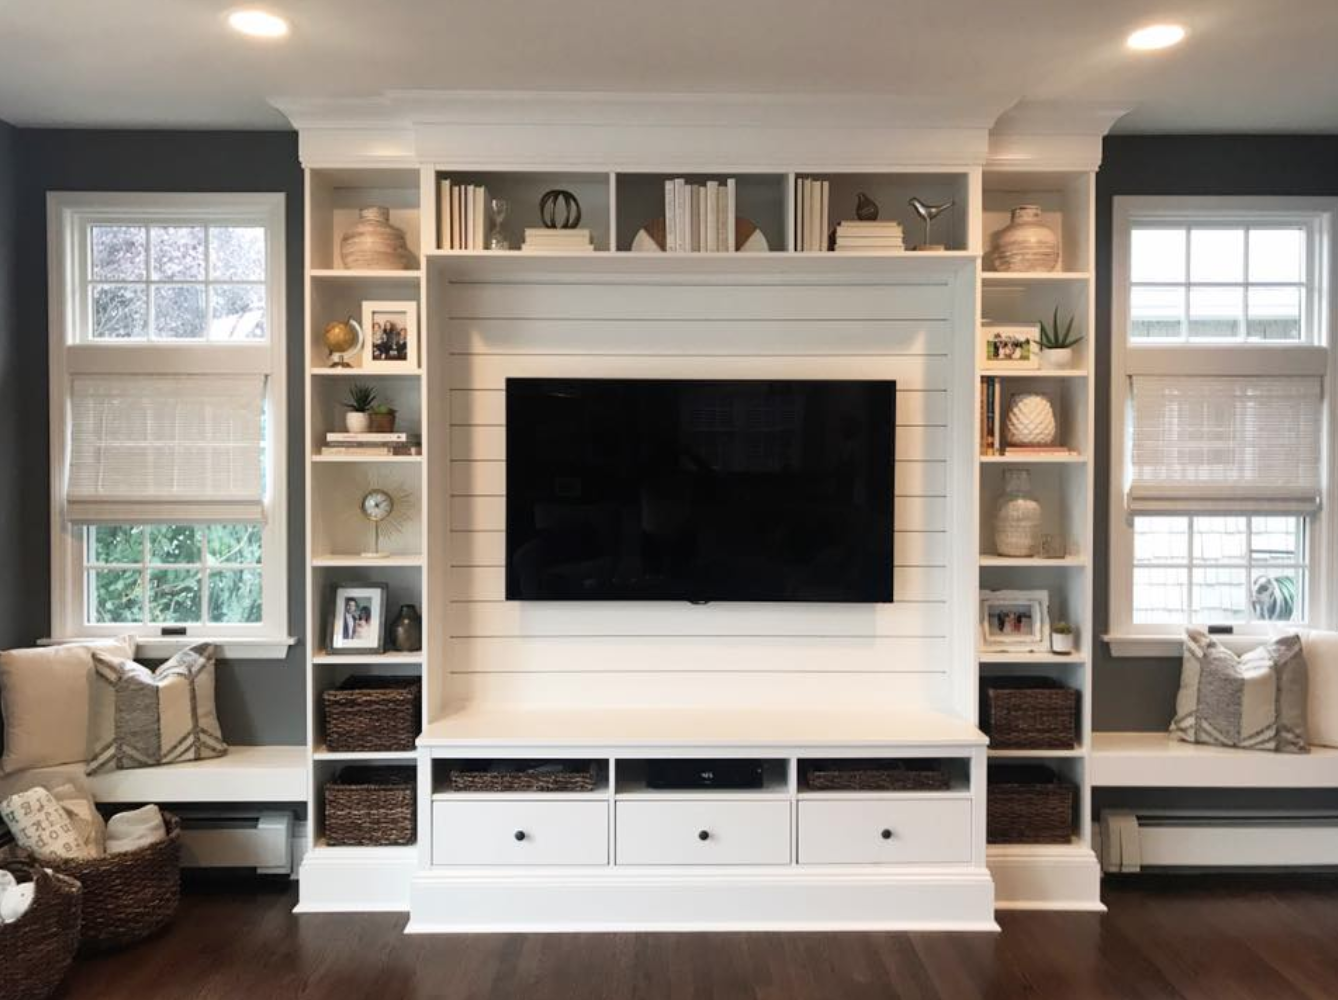 living room wall cabinets built%0A Love the drawers across the bottom